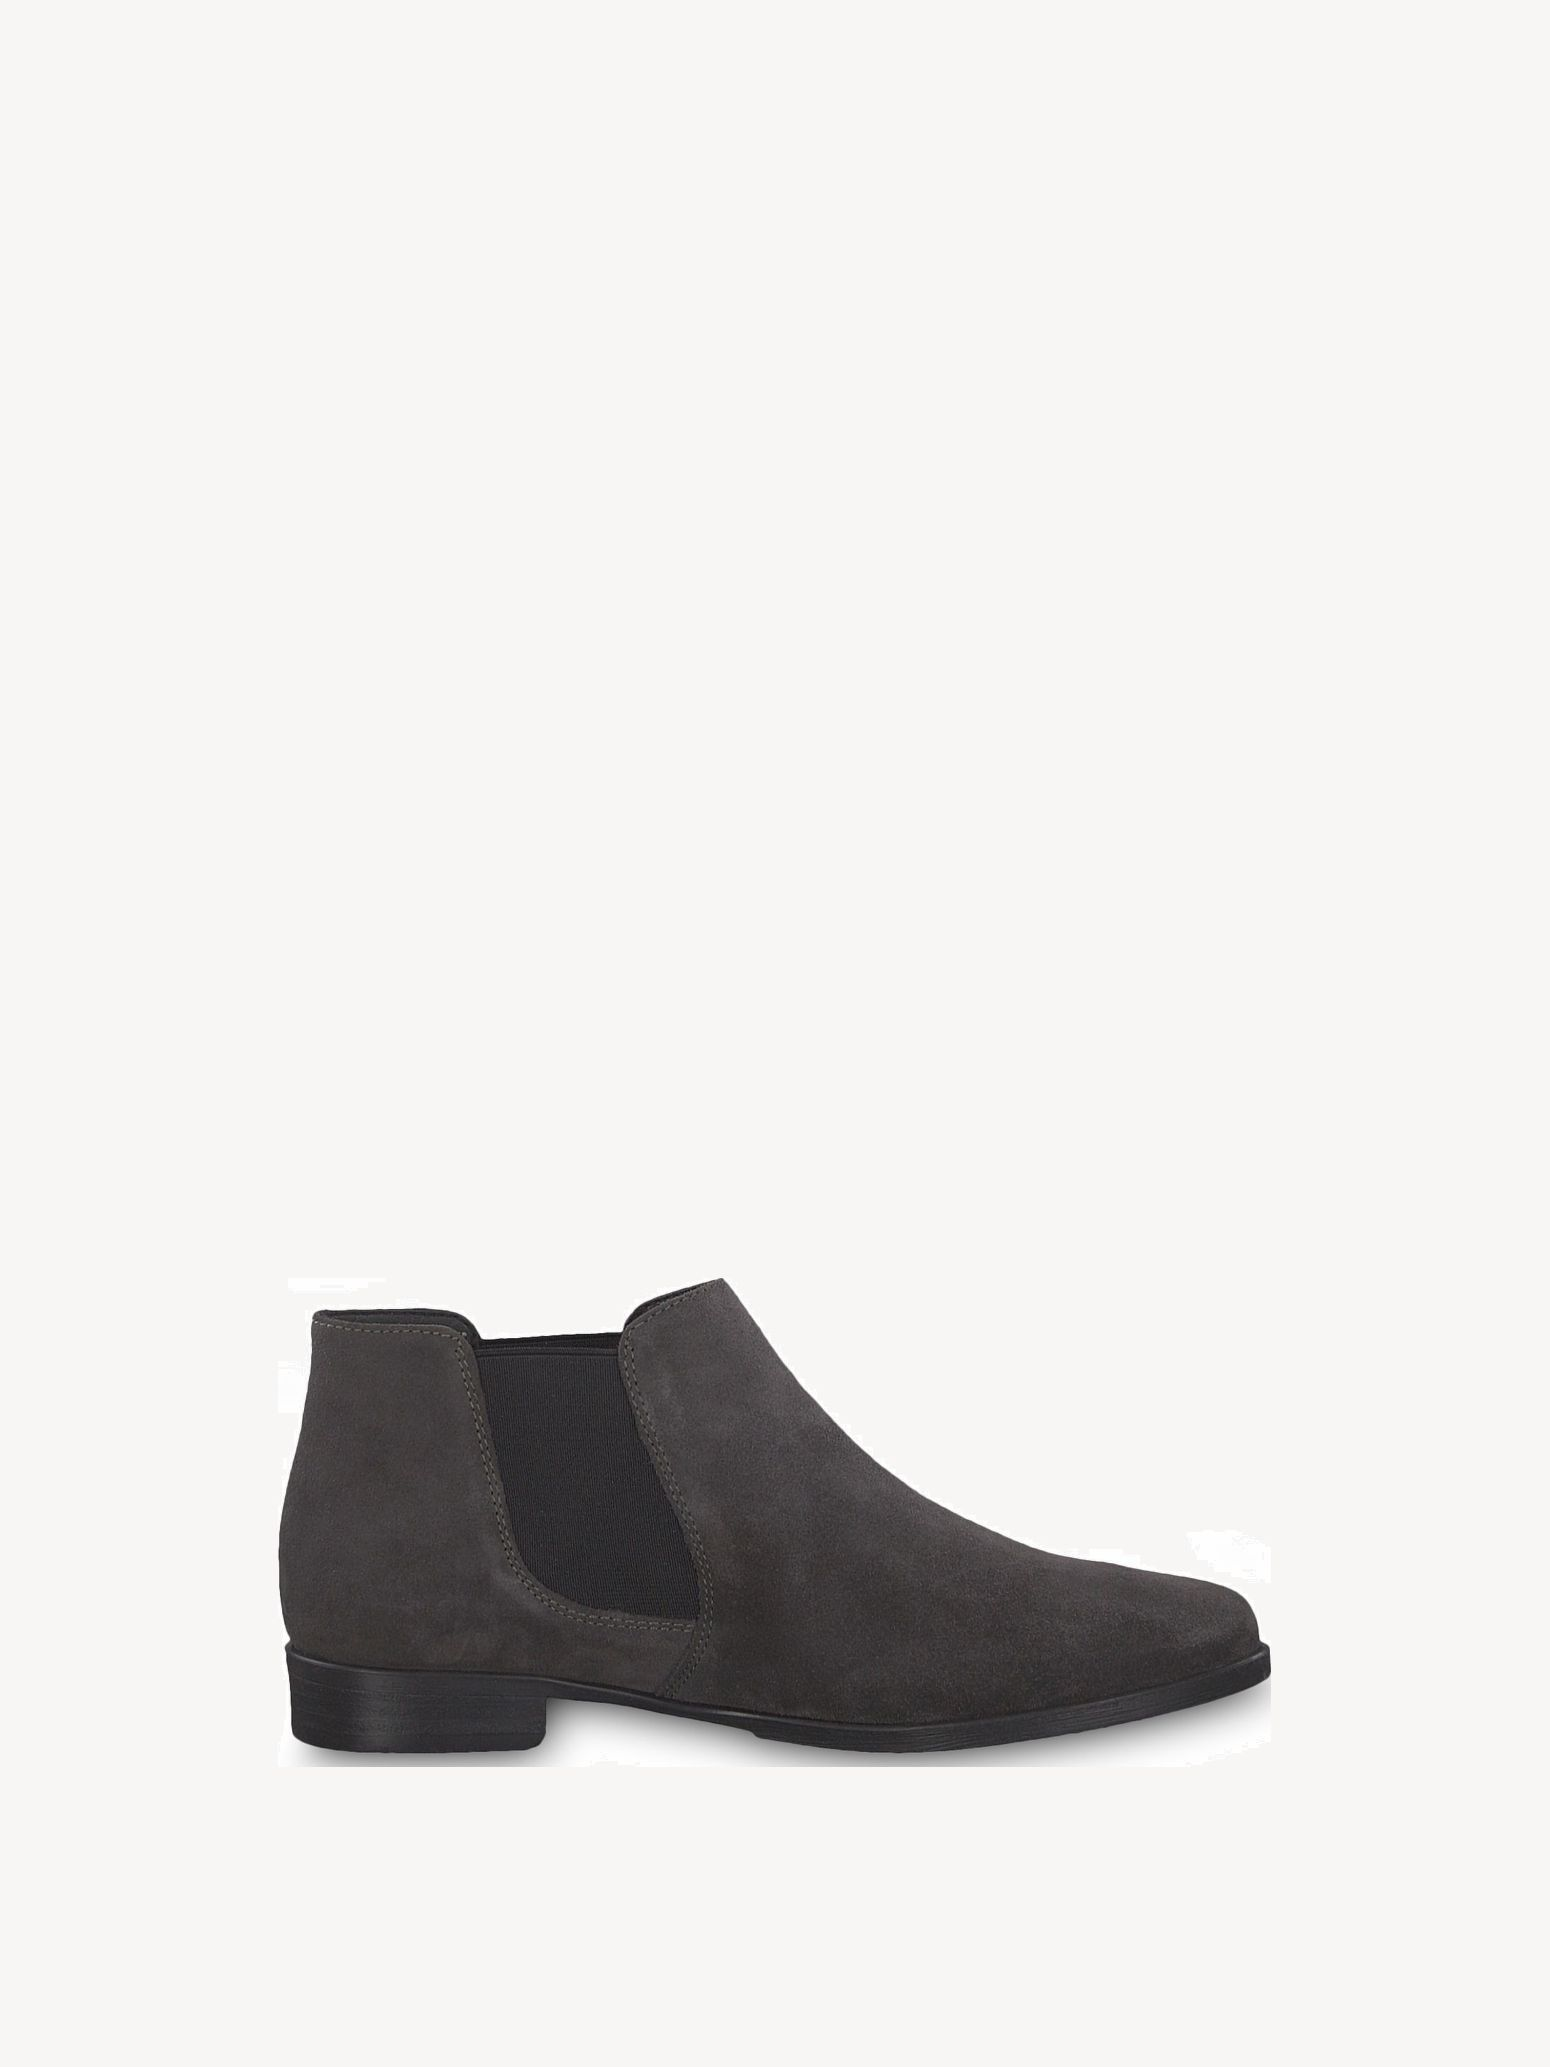 Leather Chelsea boot - grey, ANTHRACITE, hi-res